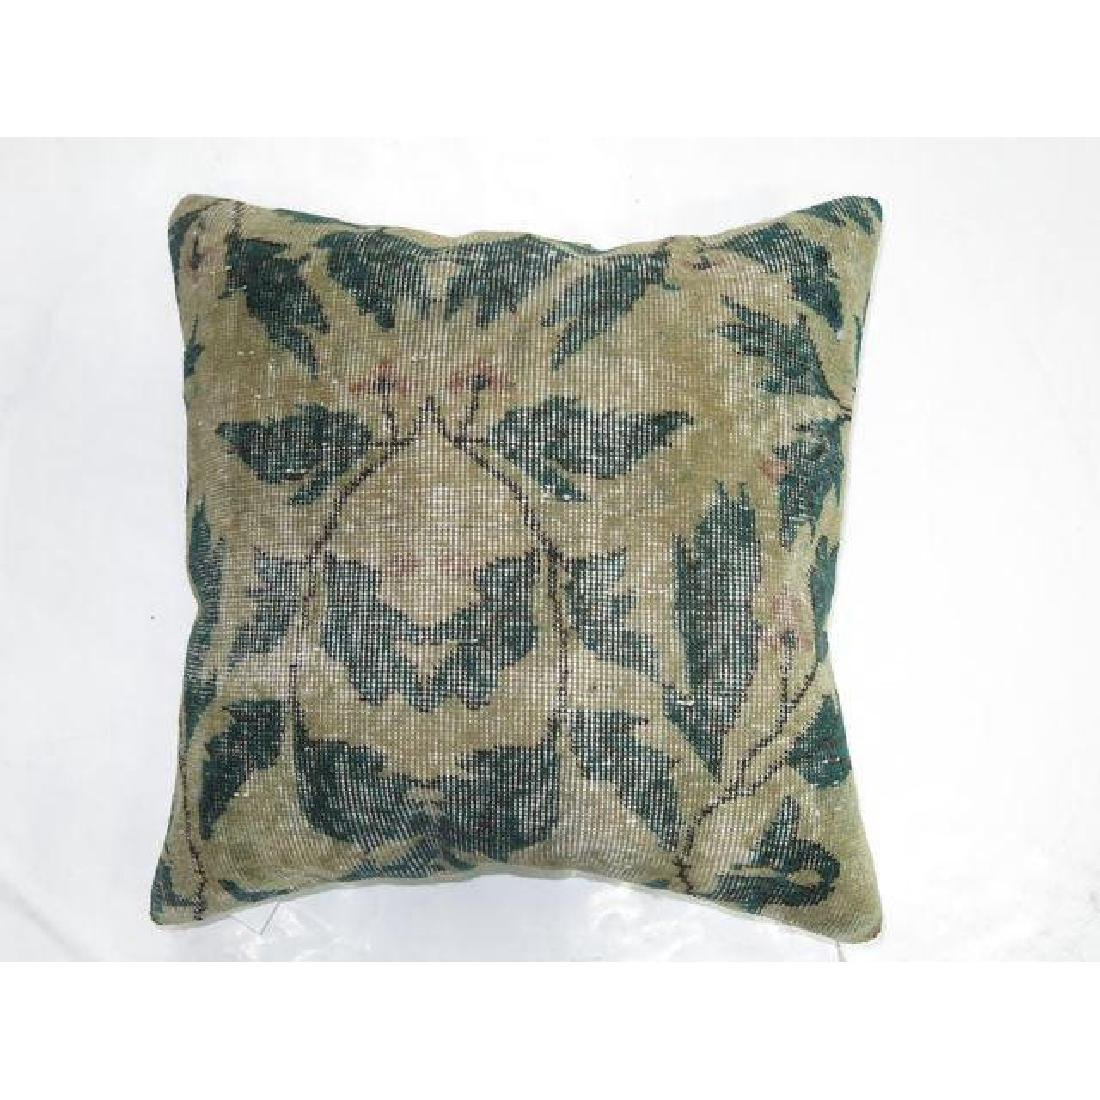 Shabby Chic Green Rug Pillow 1.6x1.6 - 2